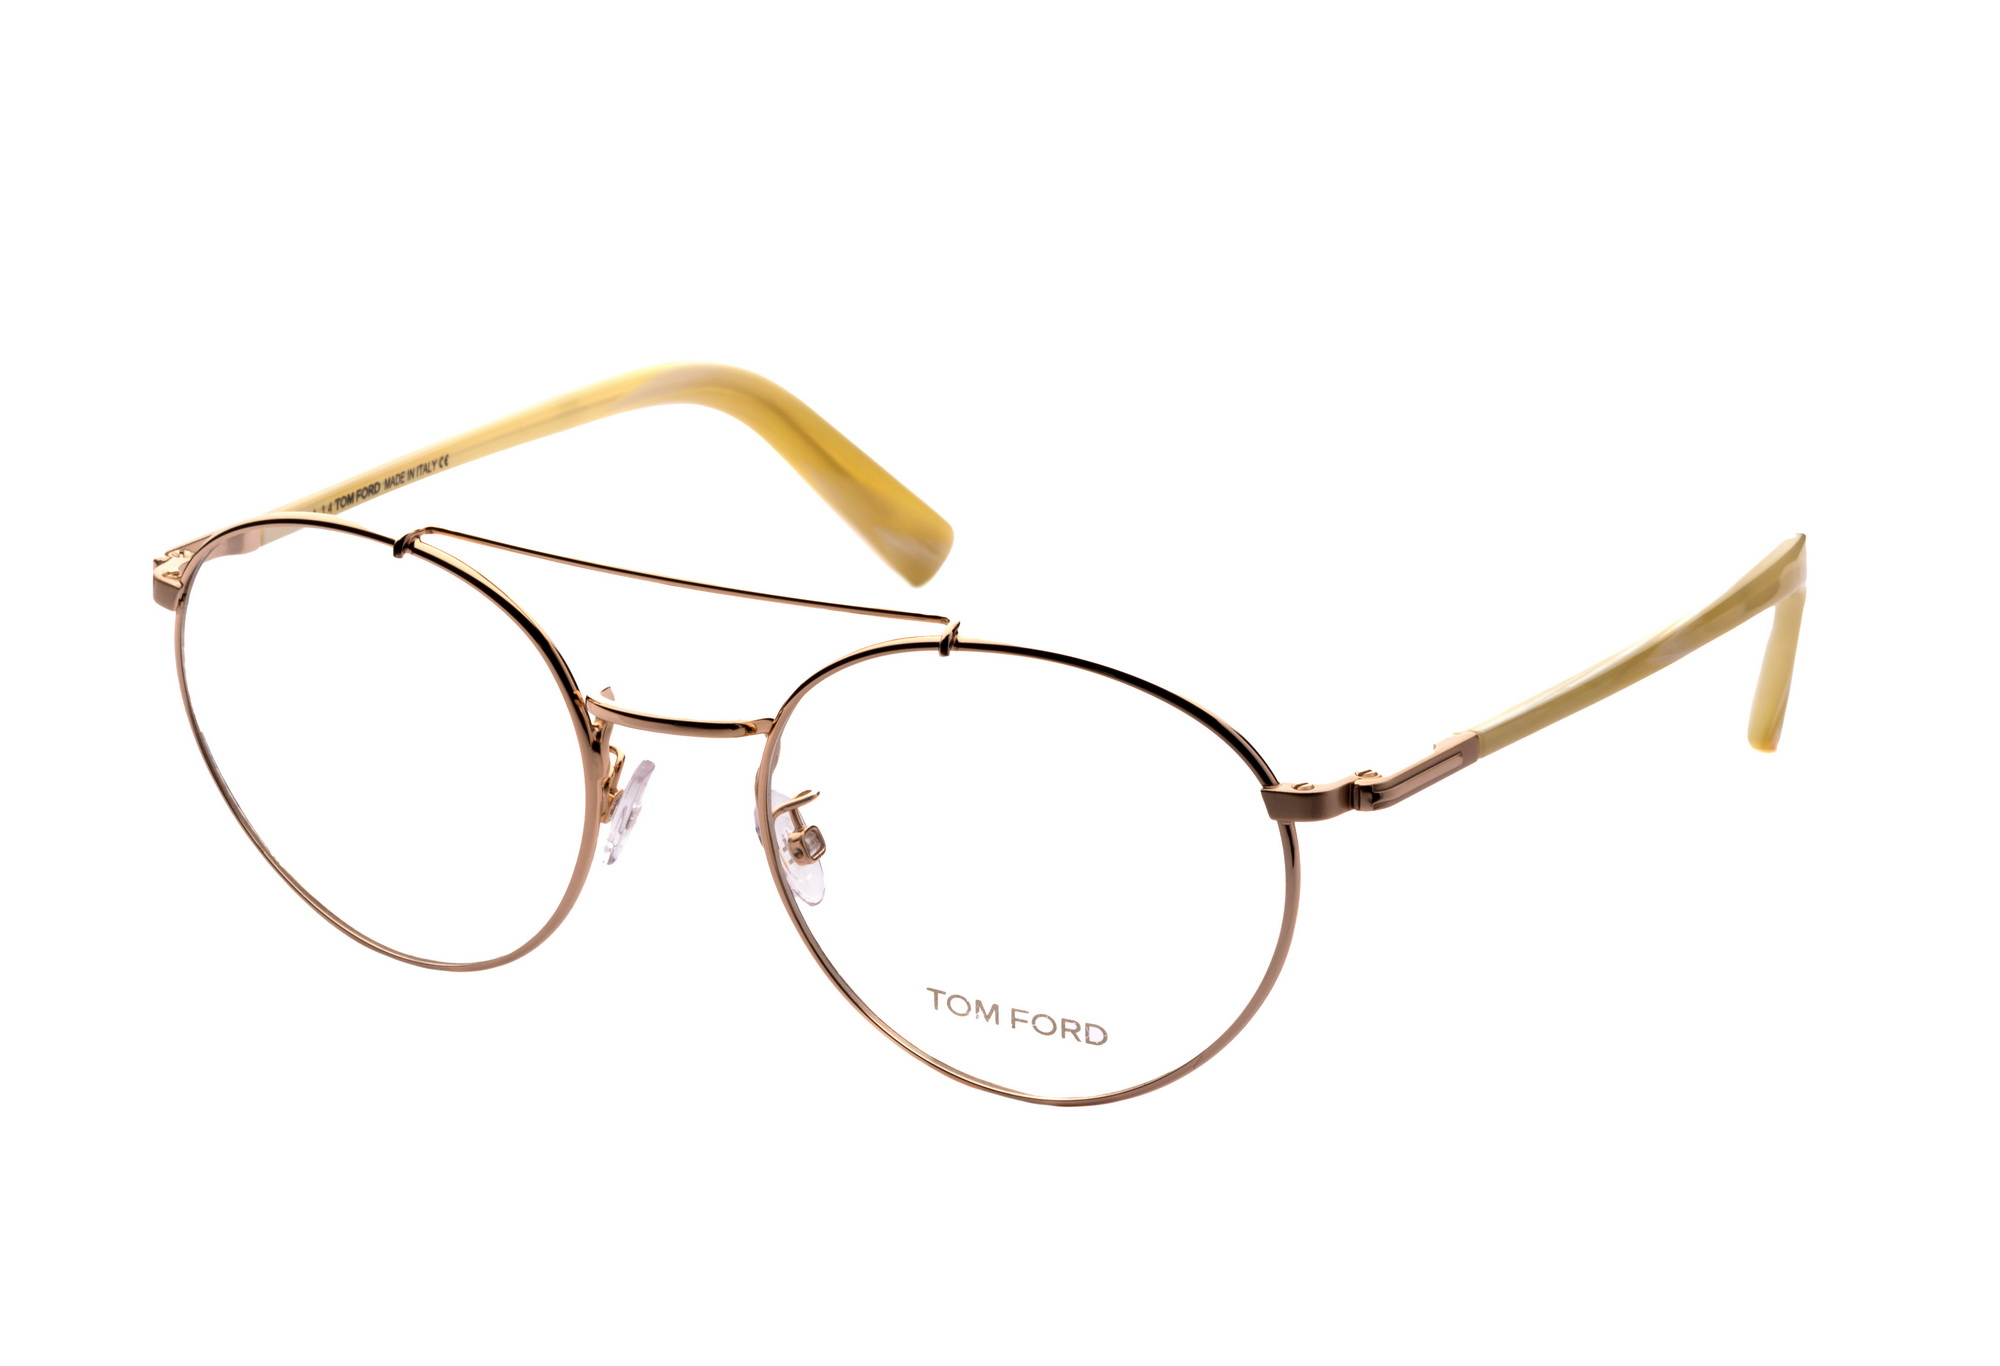 Tom Ford TF3003